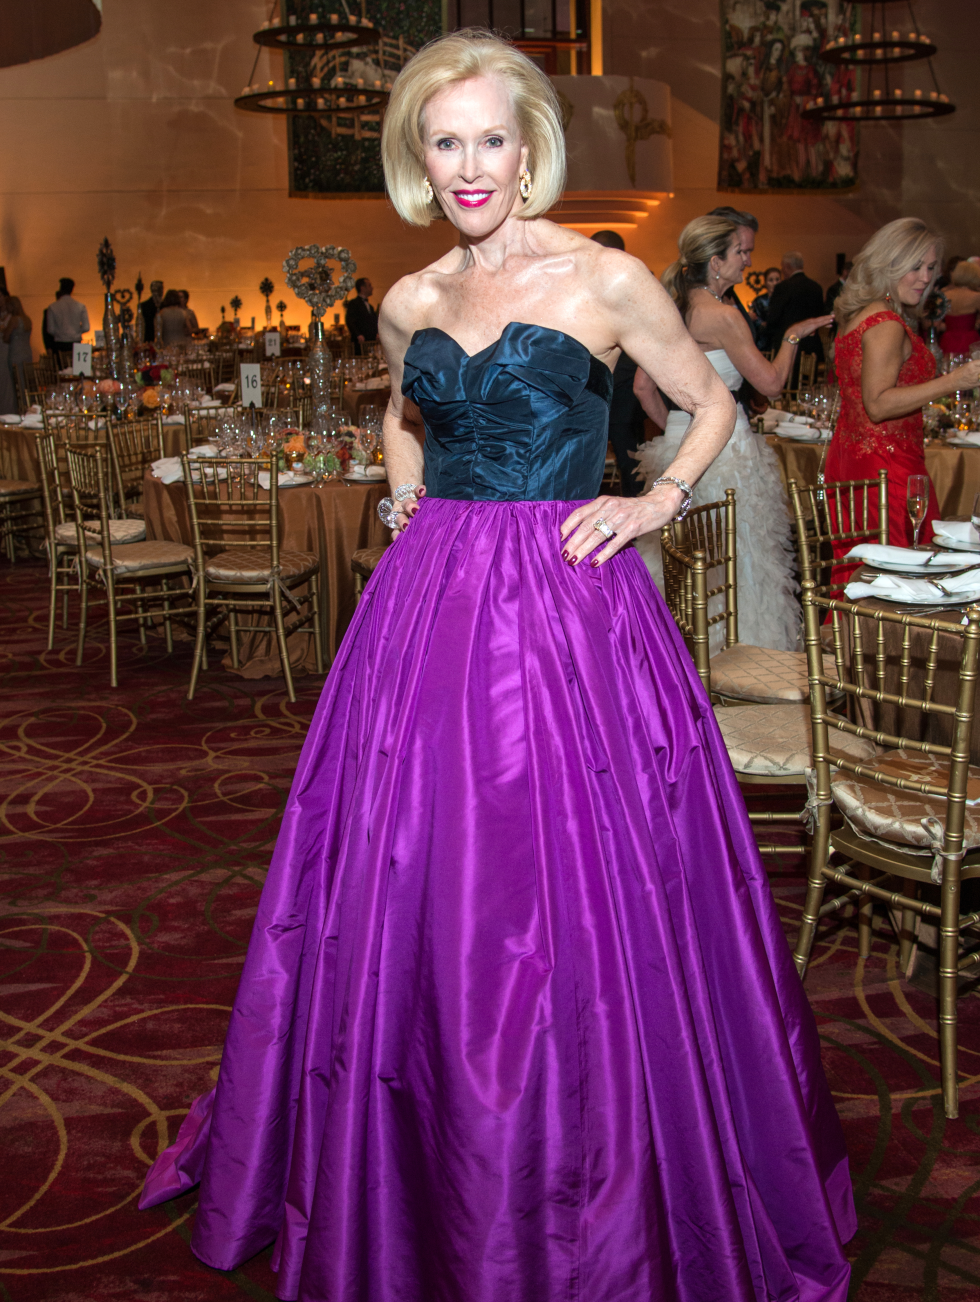 Houston, Ballet Ball gowns, Feb 2017, Claudia Hatcher in Oscar de la Renta